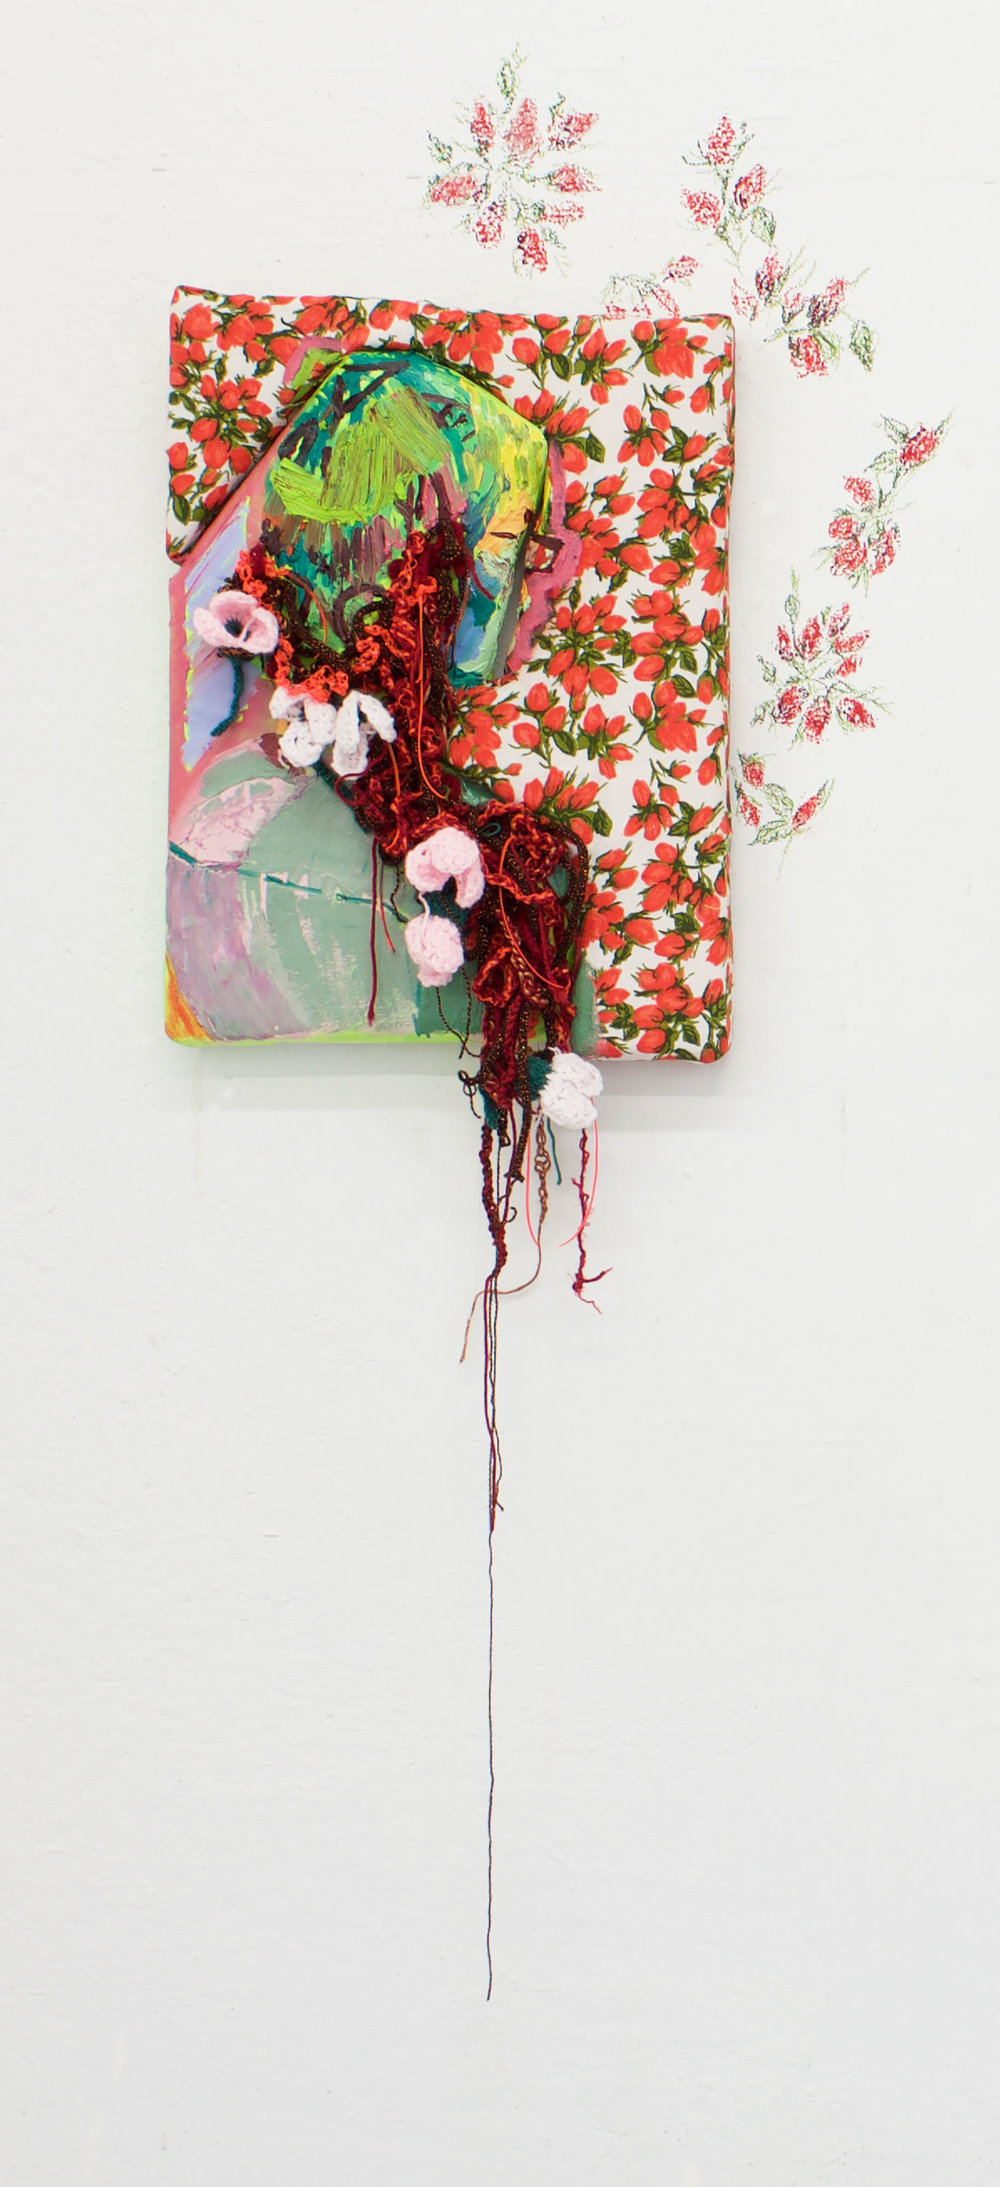 <br><b>Janet Loren Hill</b><br>If they were orchids in your hair, would that be too explicit<br>50 in x 17 in x 6 in